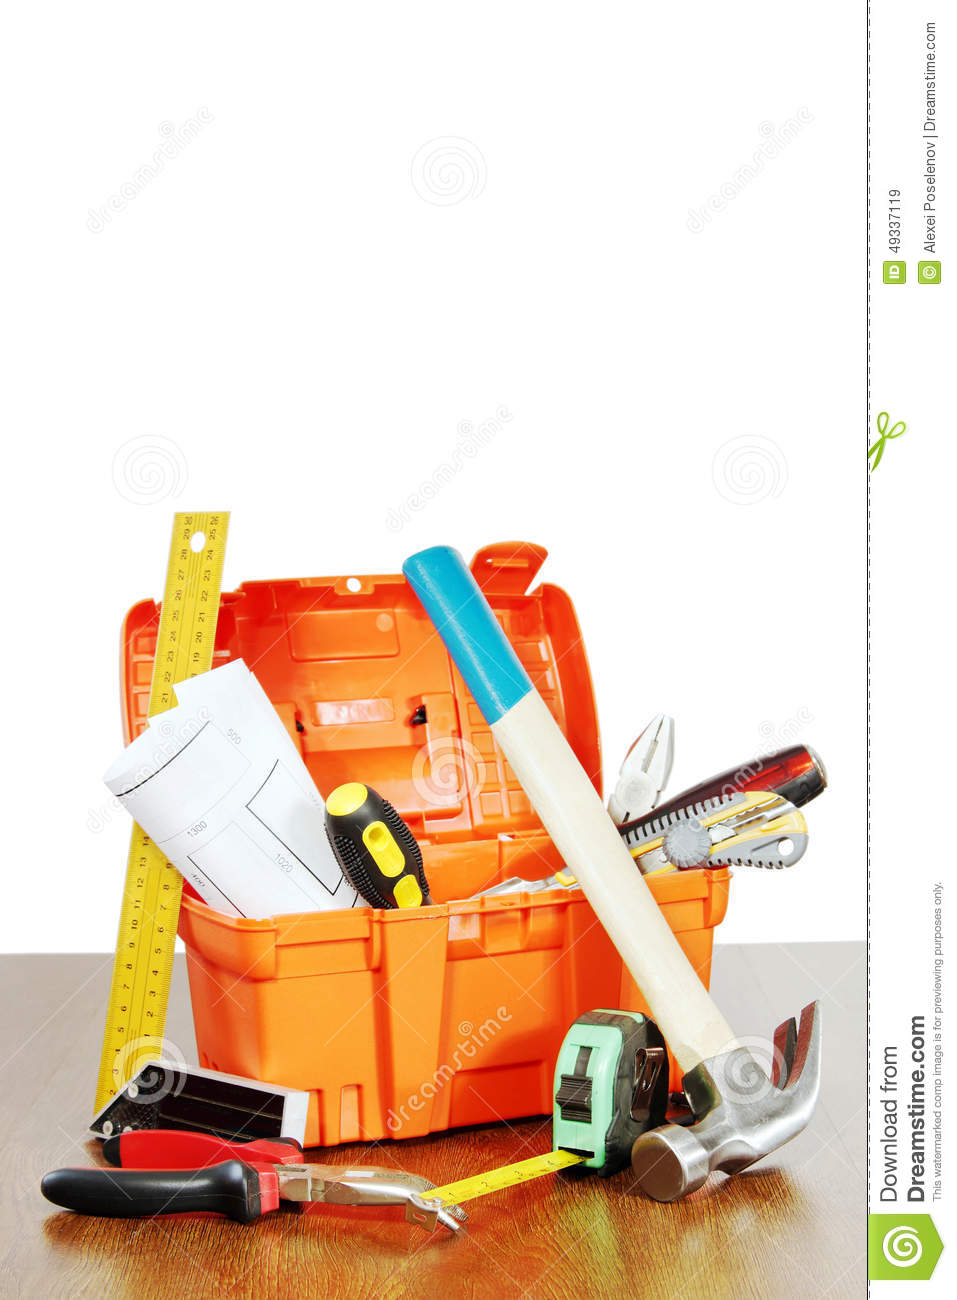 Plastic toolbox with various working tools stands on a table